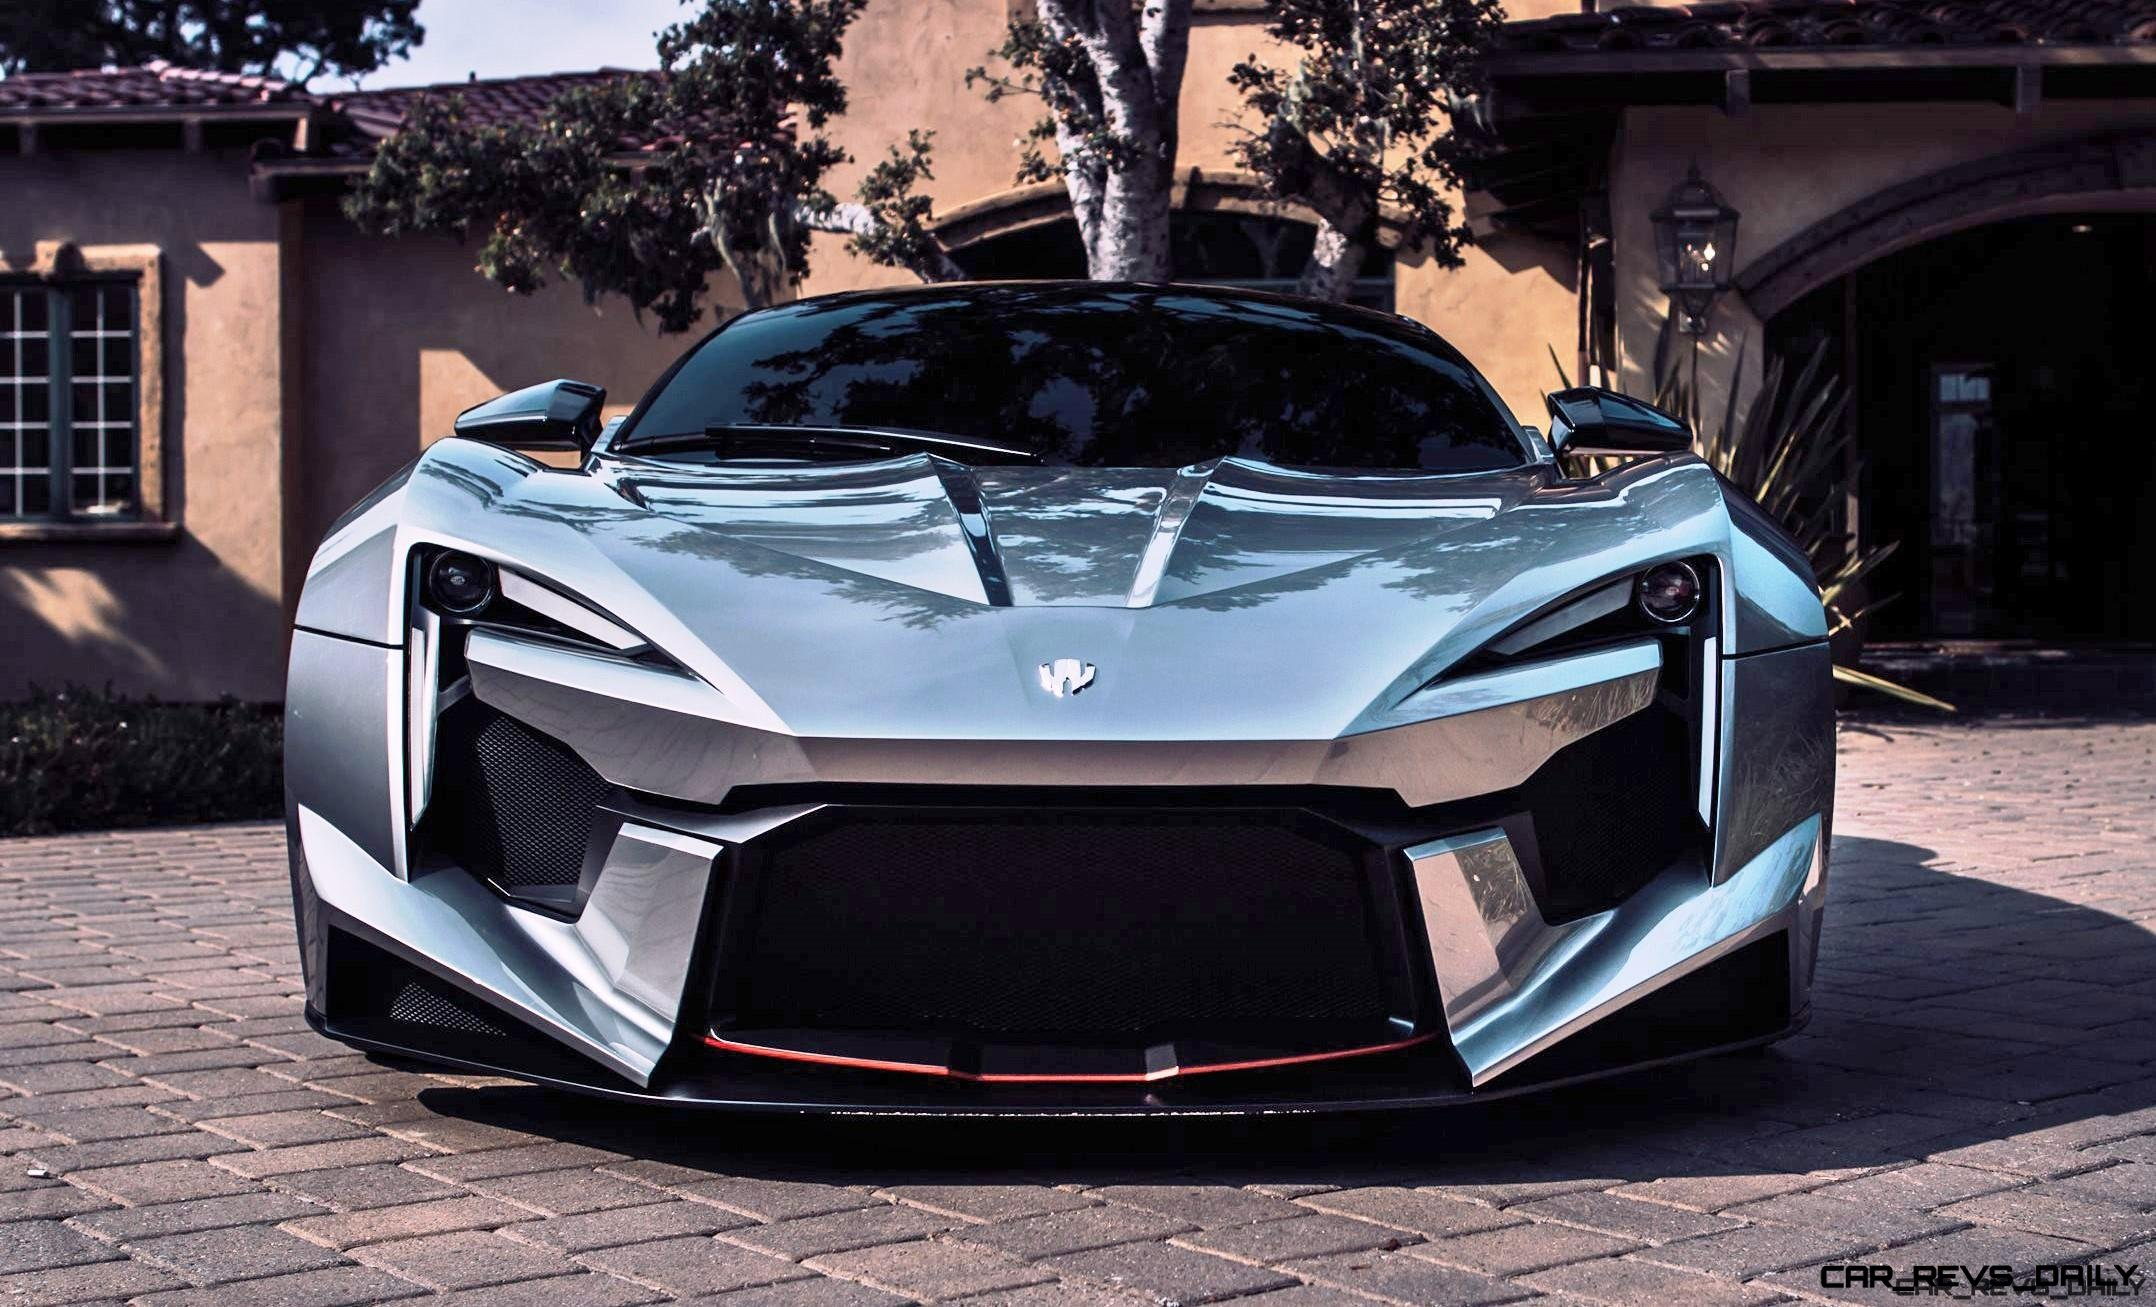 2017 W Motors FENYR SuperSport 10